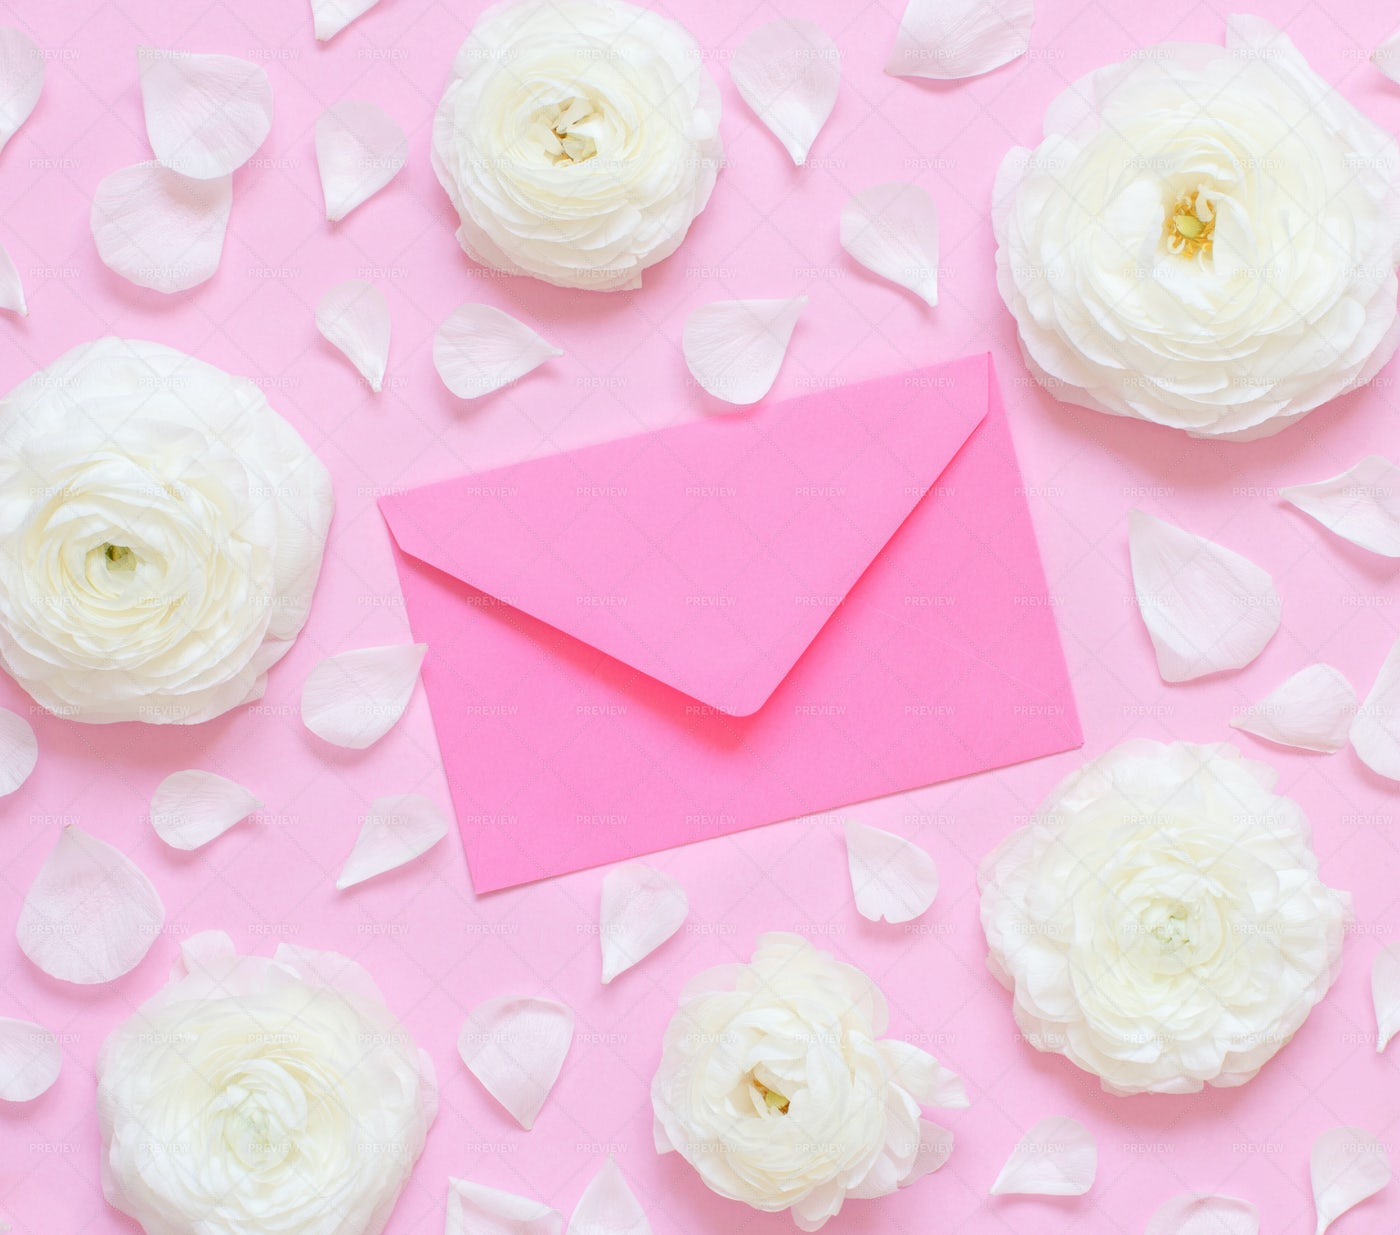 Flowers And Envelope: Stock Photos